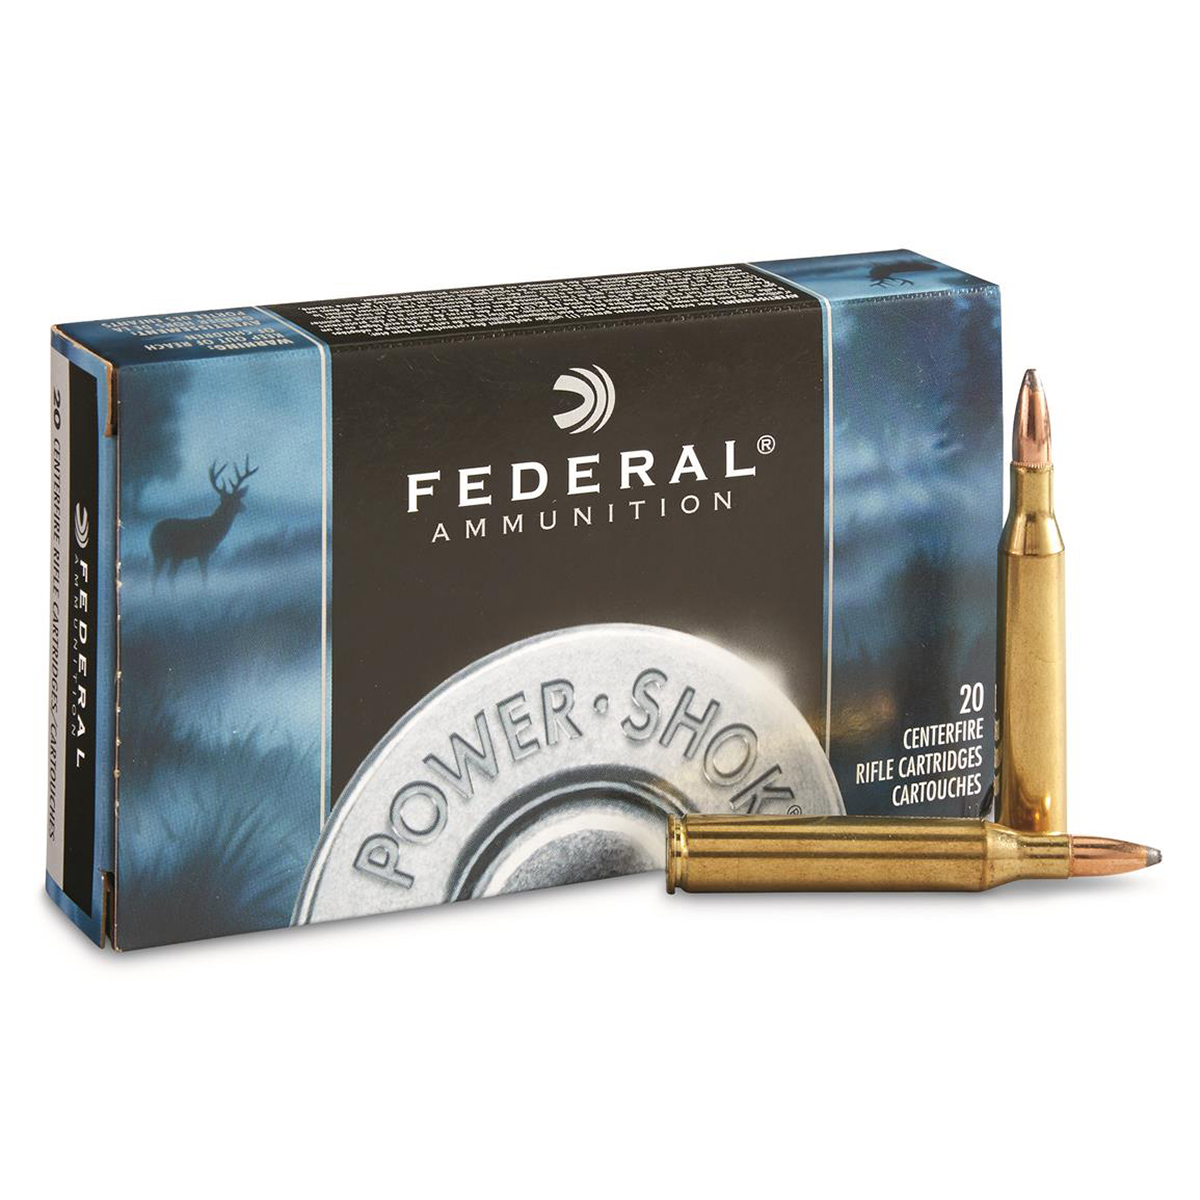 Federal Power-Shok Rifle Ammo, 7mm Rem Mag, 175-gr, JSP